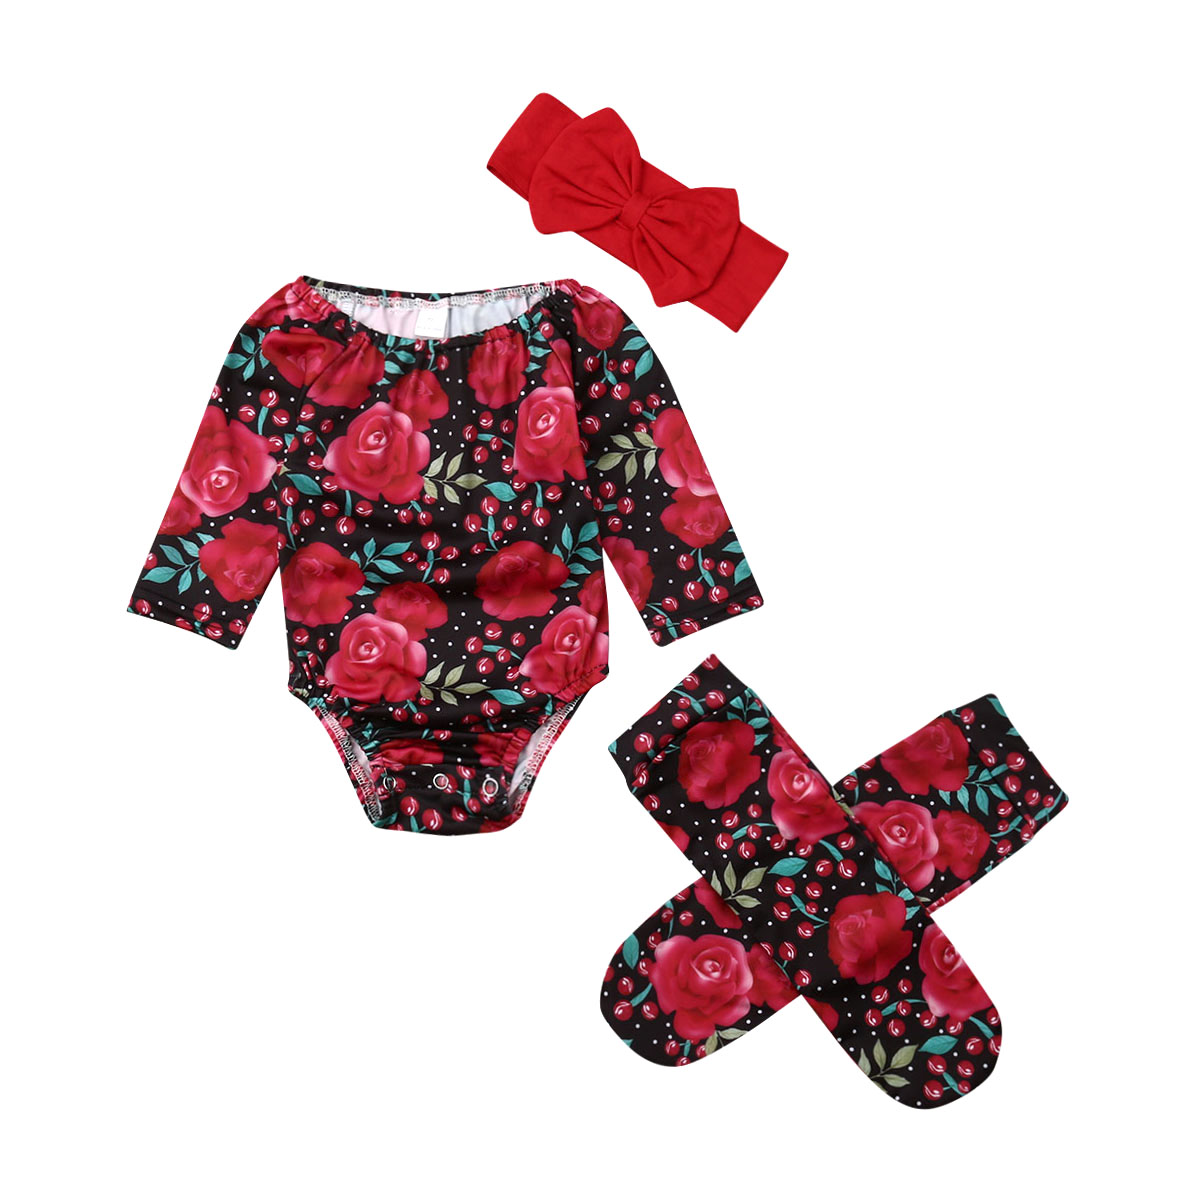 0-24M Sweet Newborn Kids Baby Girls Floral Clothes Long Sleeve   Romper   Jumpsuit Playsuit with Stockings Socks Outfit Summer